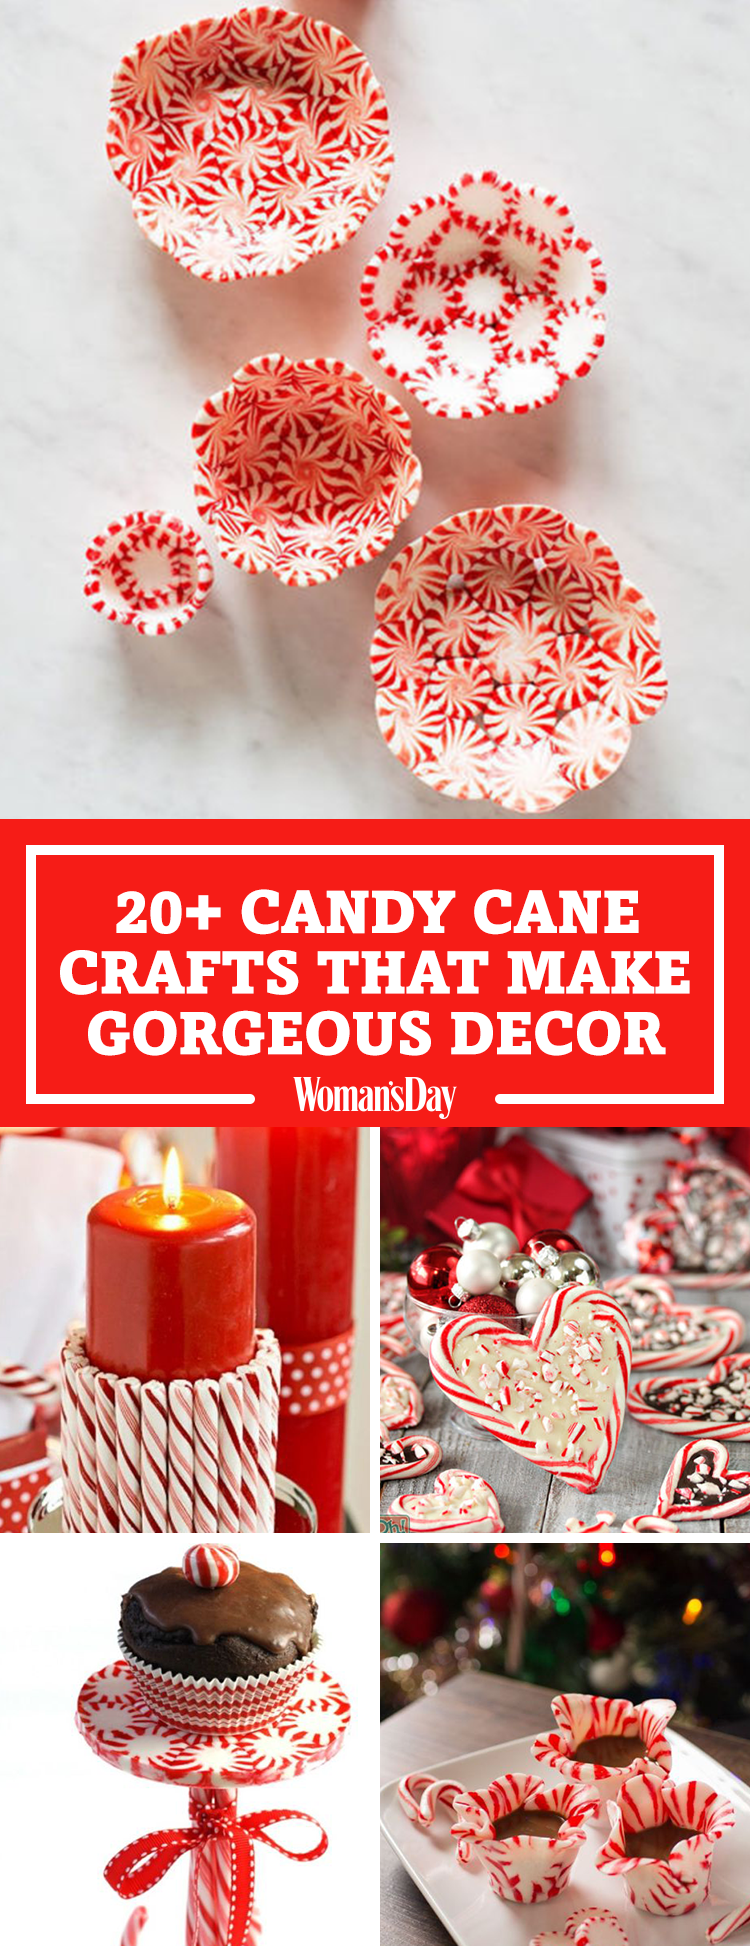 25 Candy Cane Crafts Diy Decorations